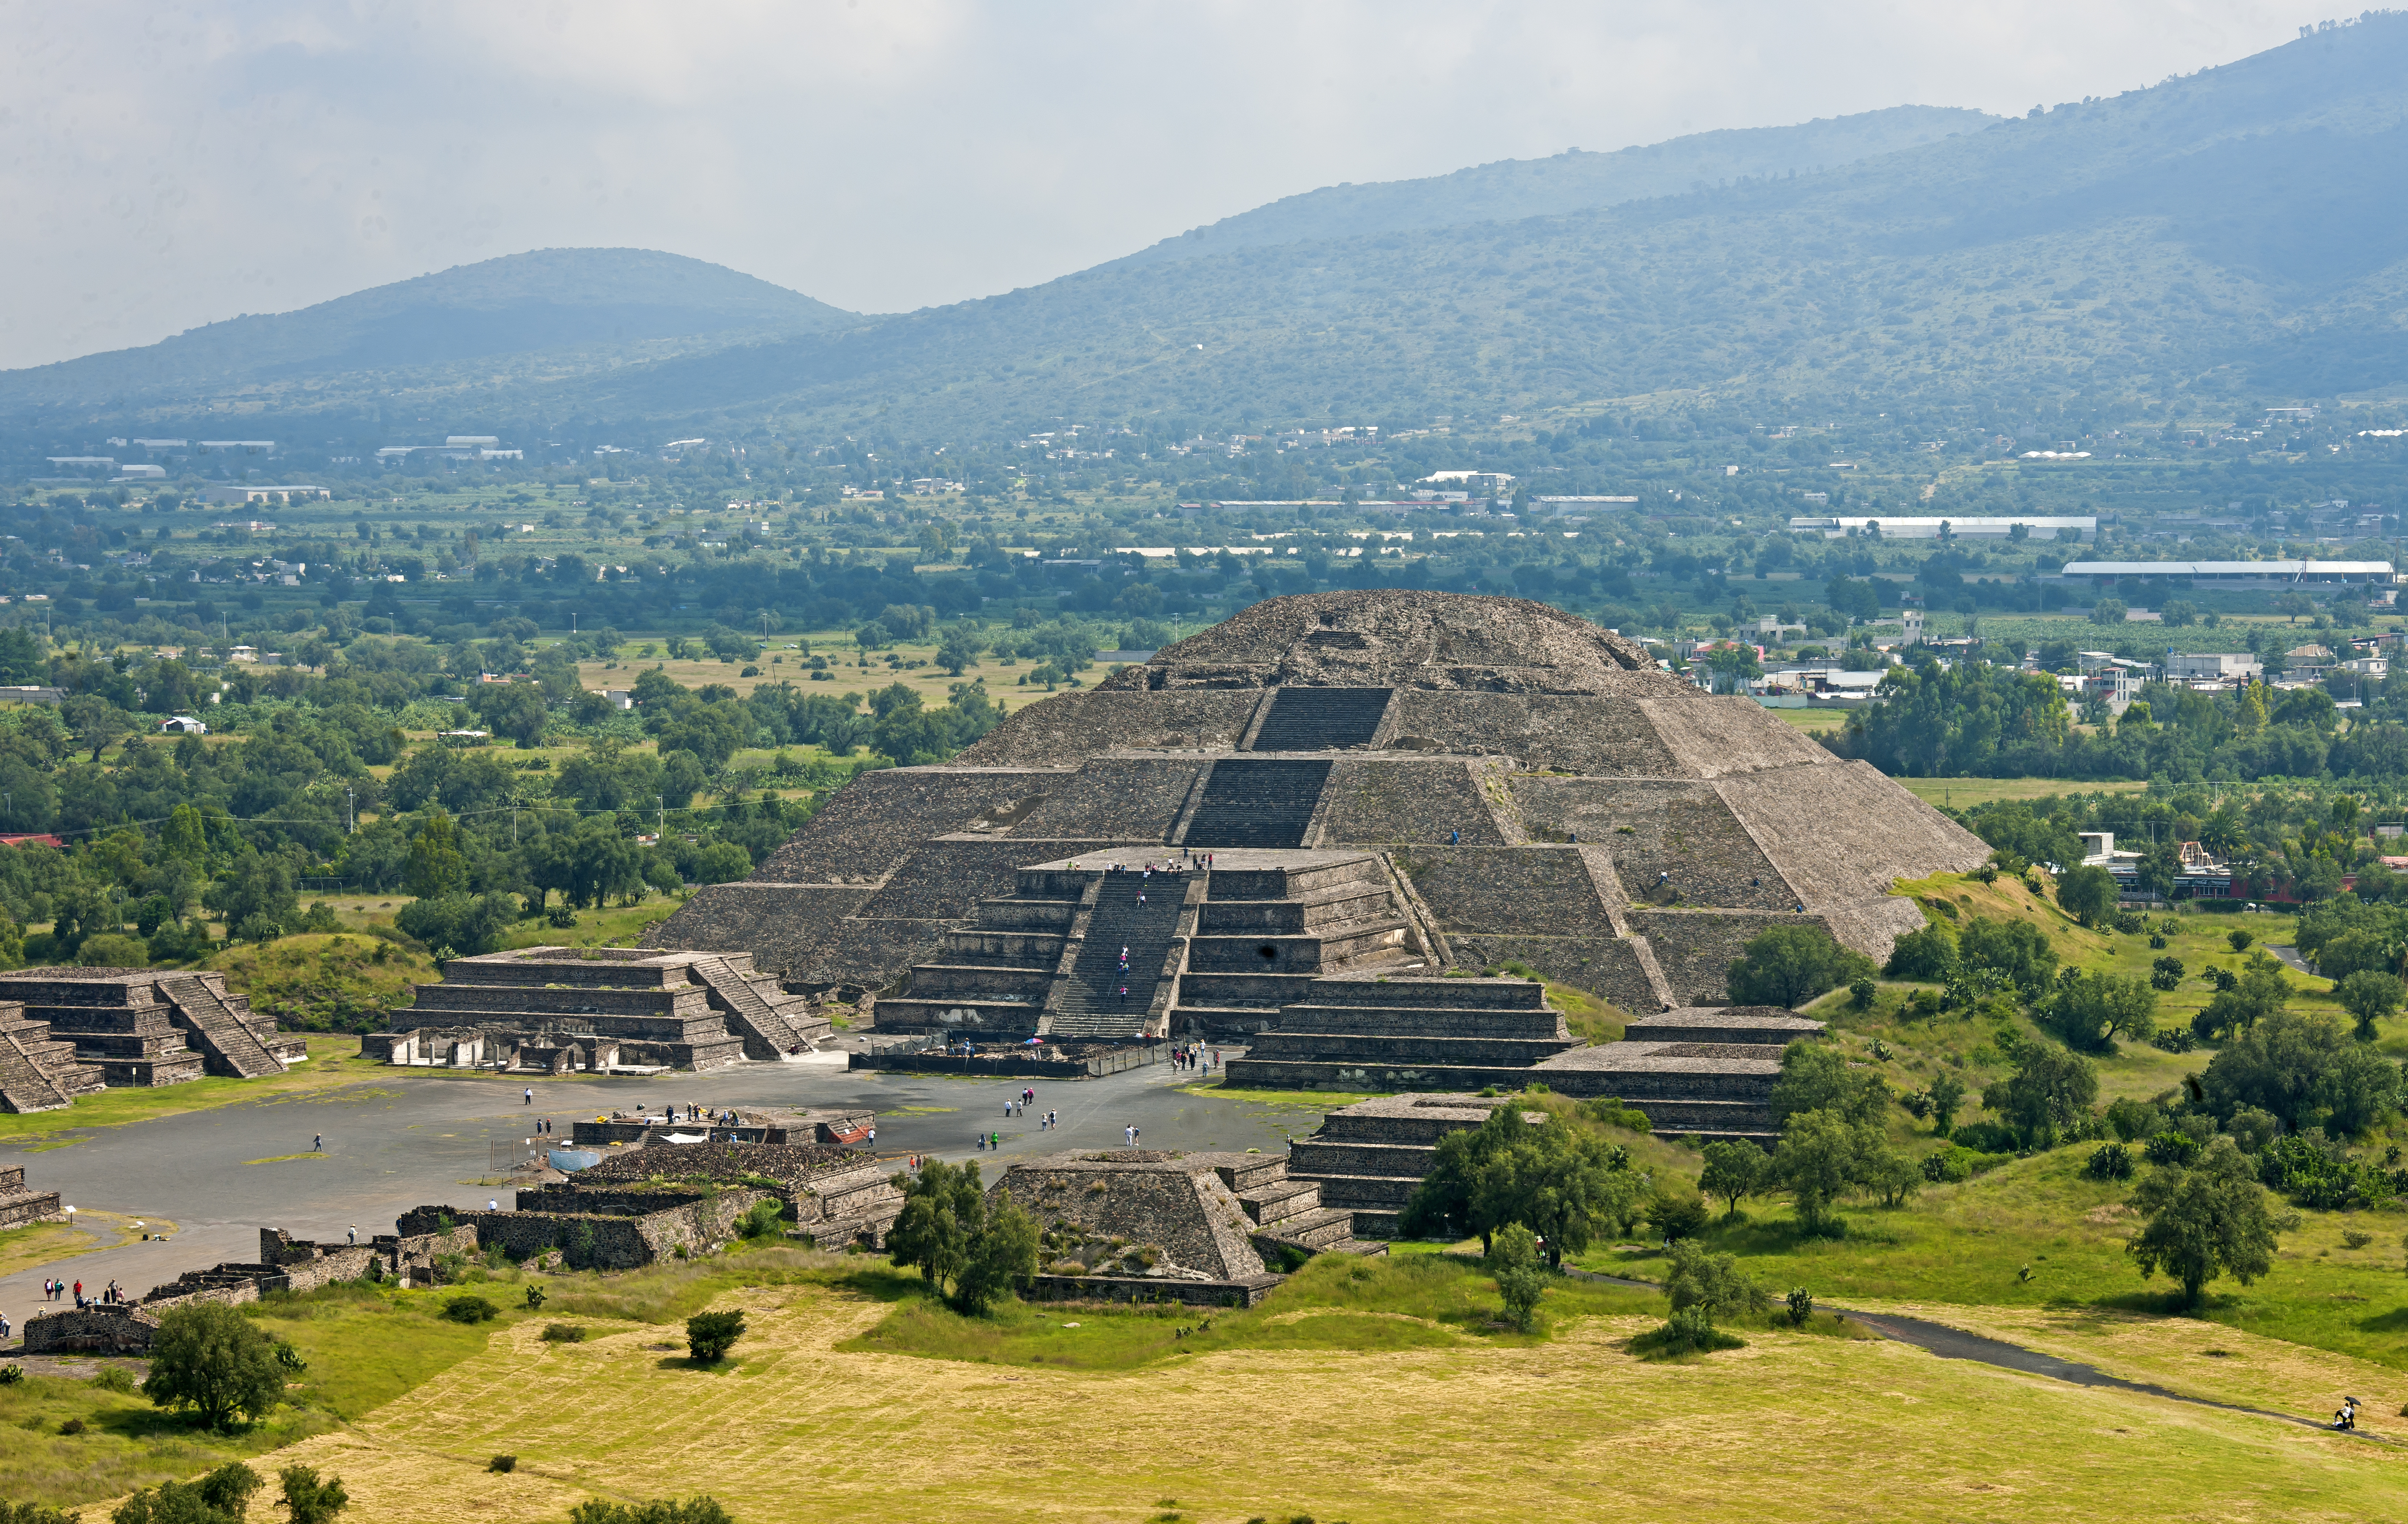 File:Mexican landscape with Pyramid of the Moon, Teotihuacan.jpg ...